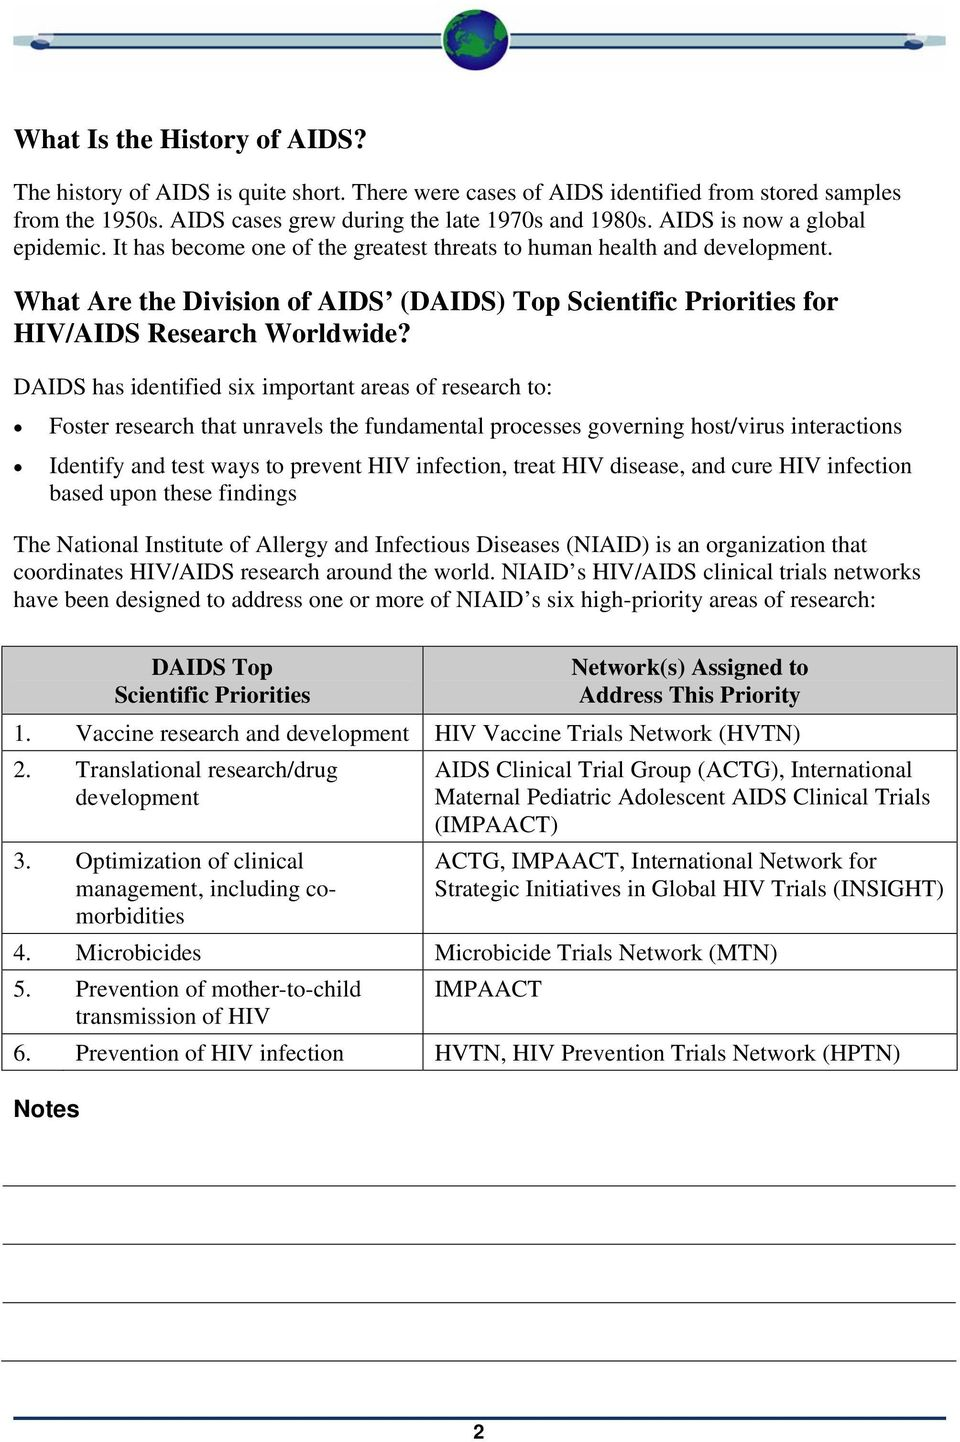 What Are the Division of AIDS (DAIDS) Top Scientific Priorities for HIV/AIDS Research Worldwide?